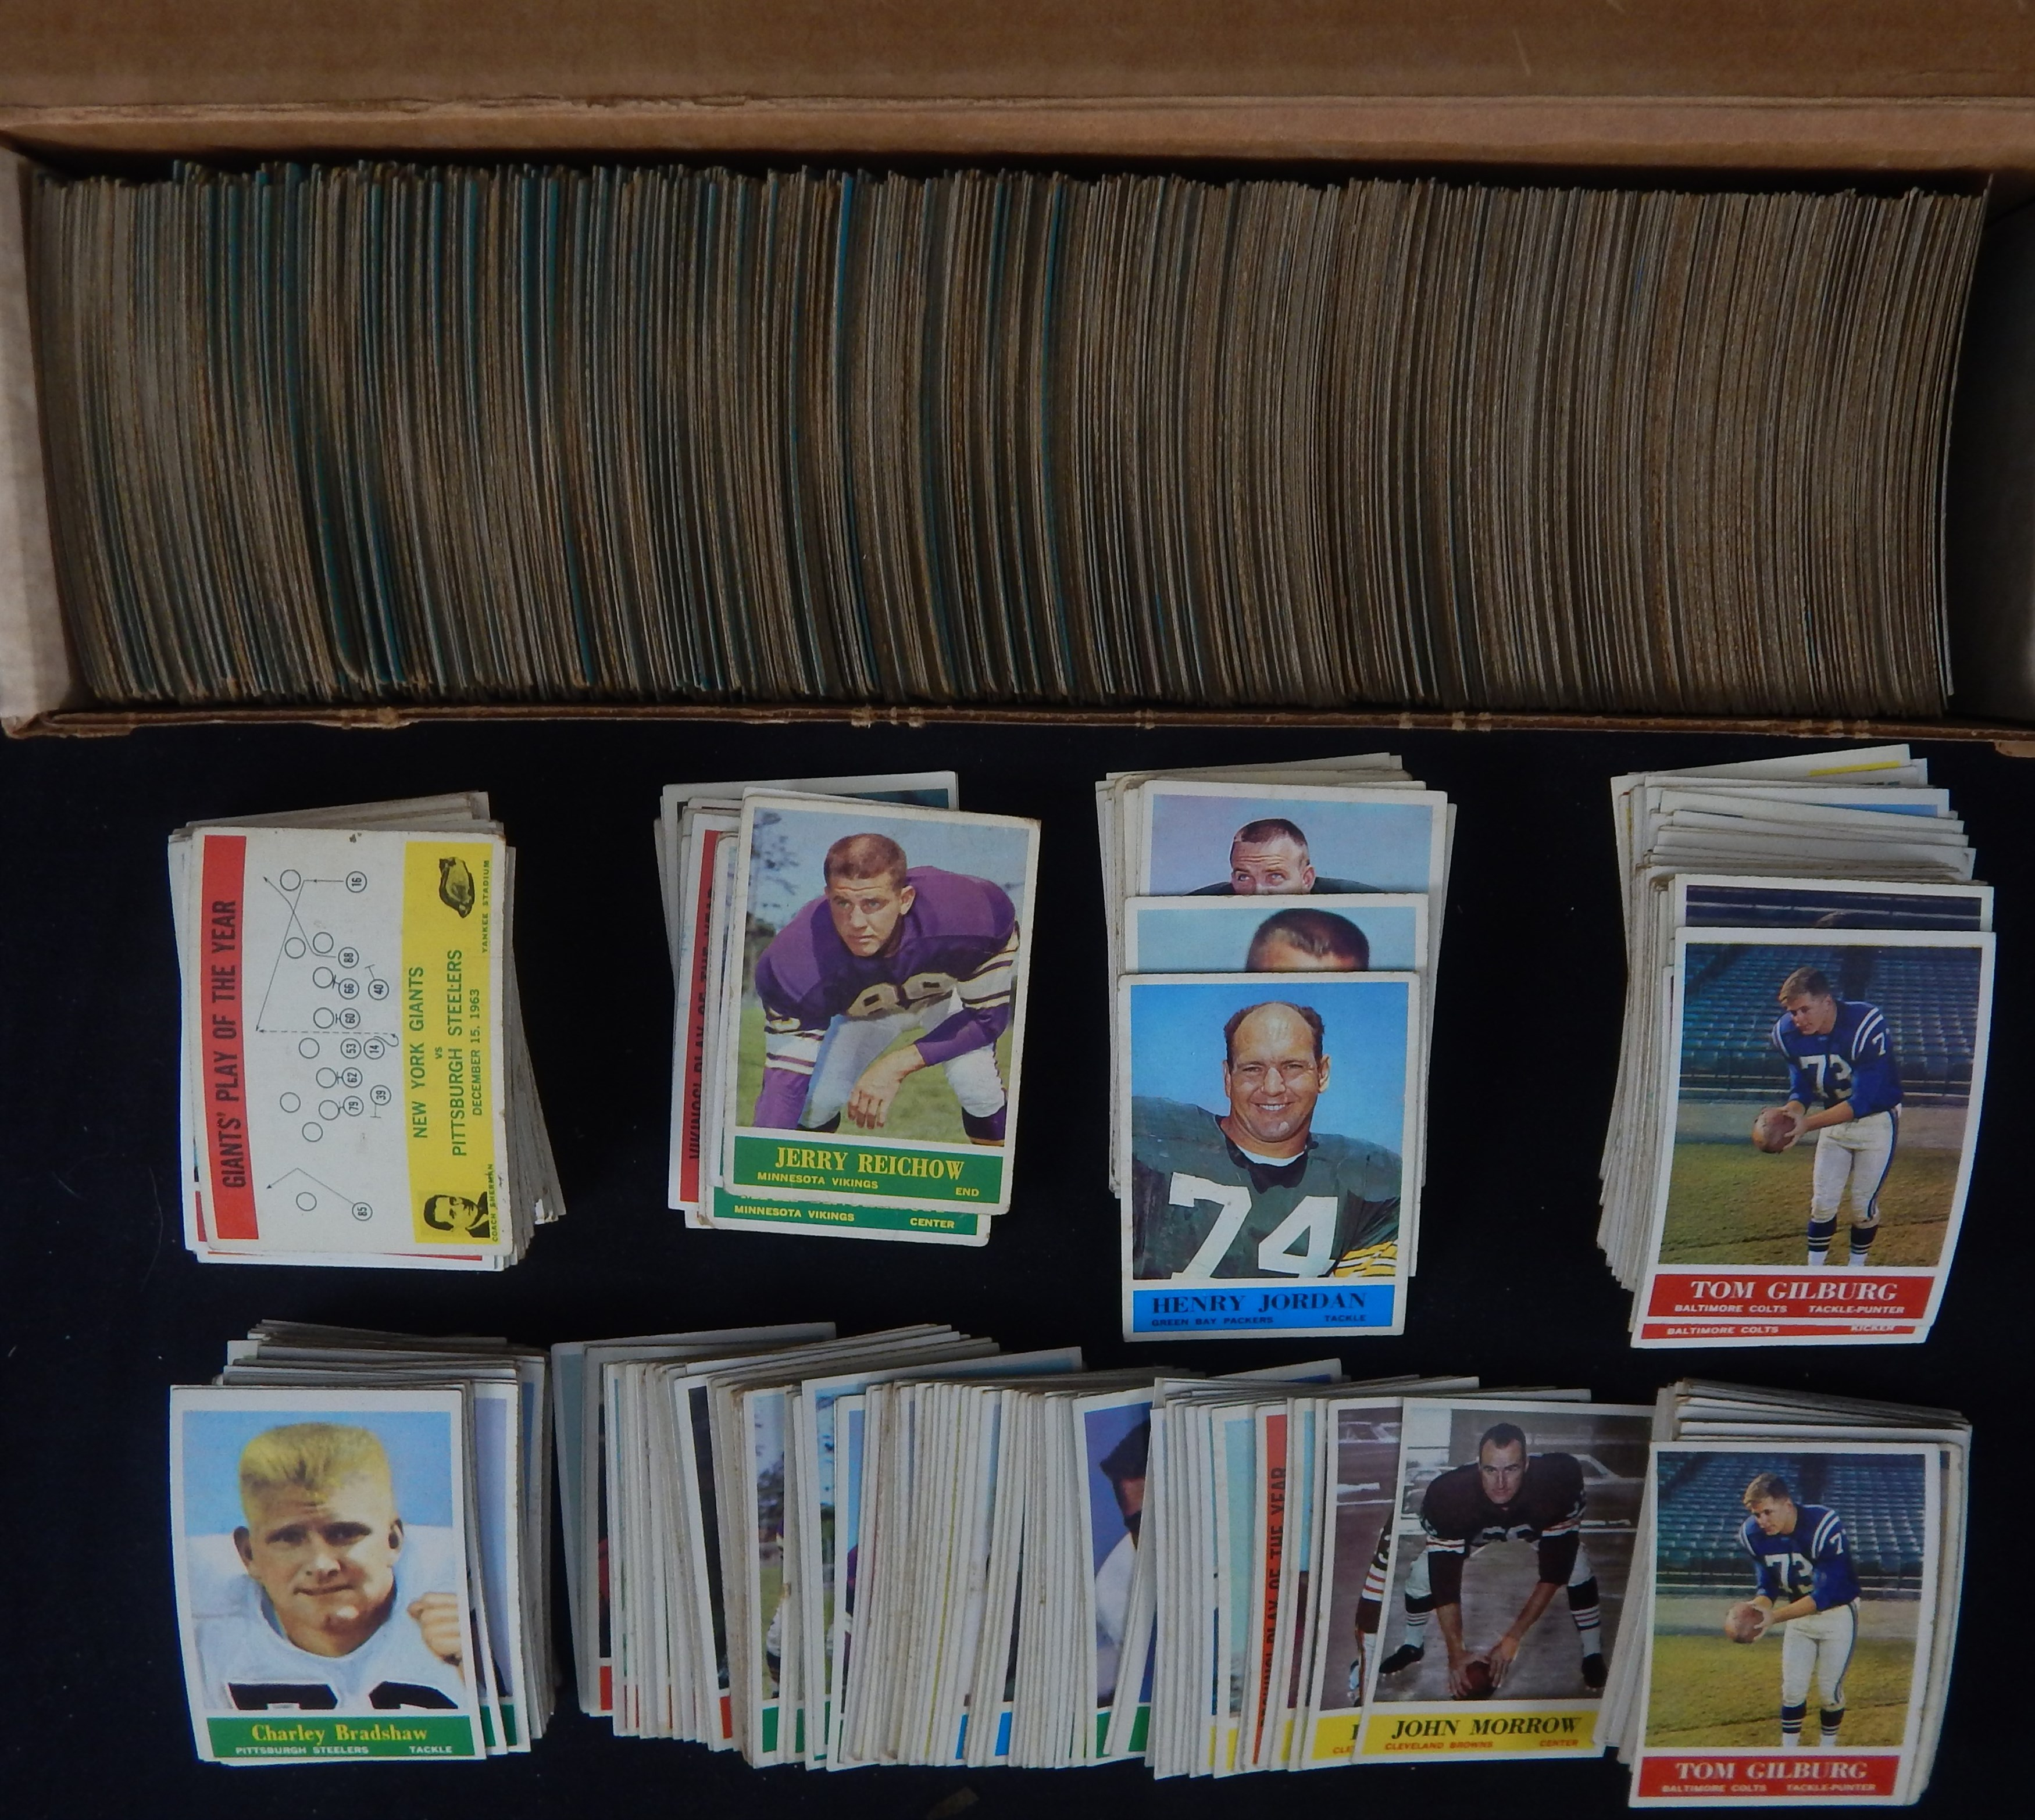 1964 Philadelphia Football Collection of 1,100+ Cards